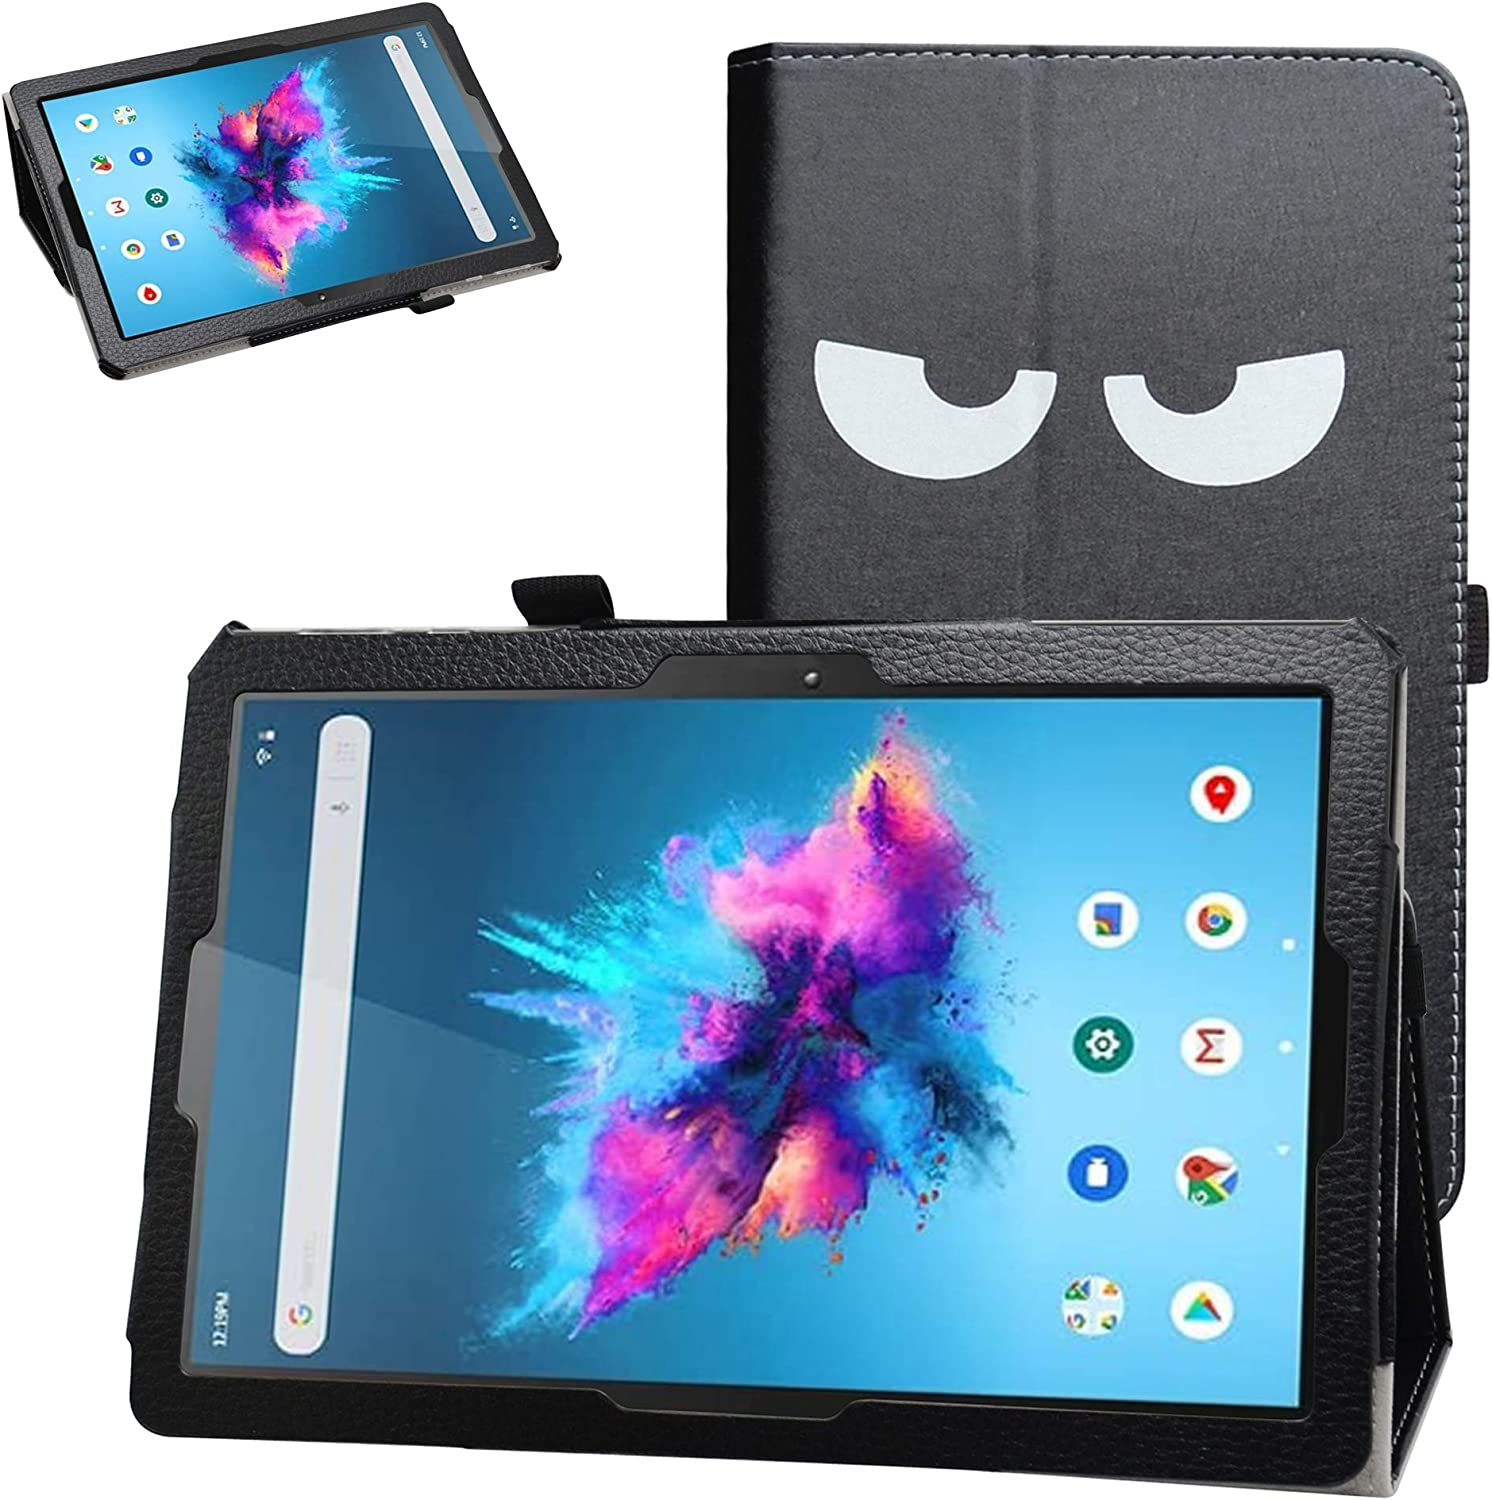 Bige for VANKYO MatrixPad S30 Rapid rise 10 Leather Tablet Low price Case Fol inch PU